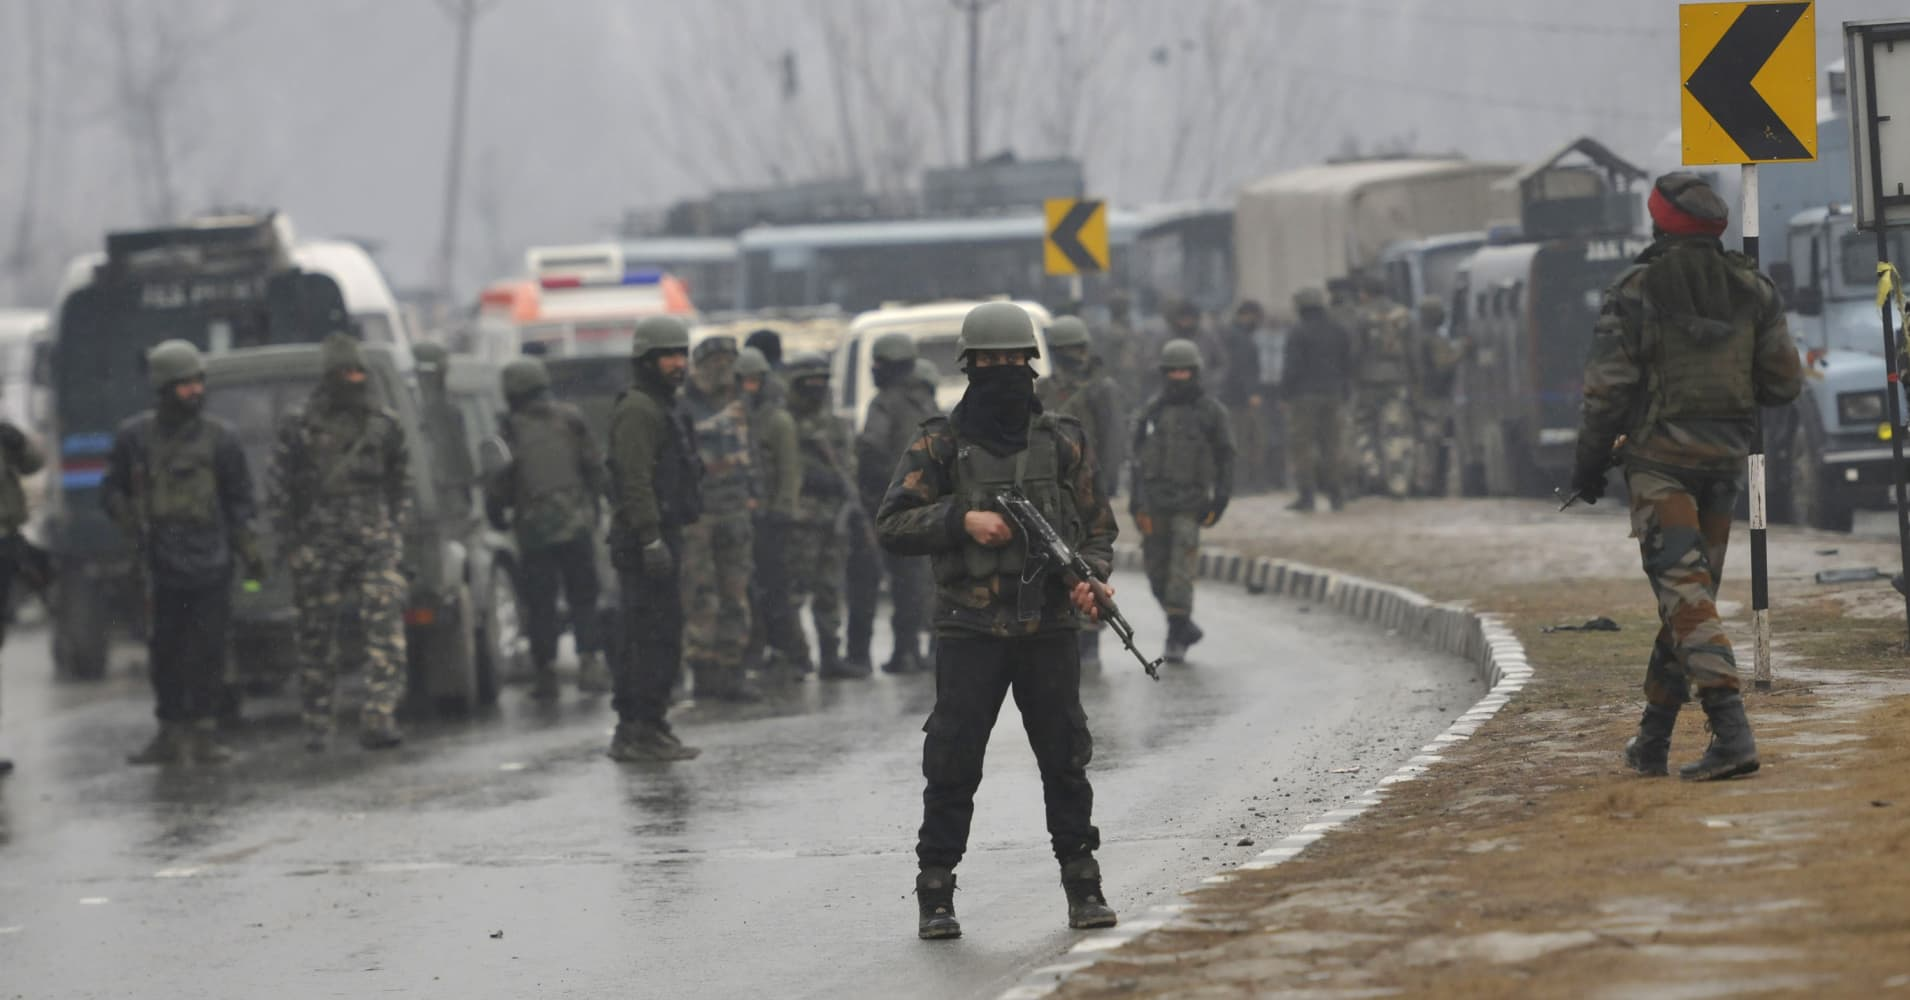 Fears abound that another India-Pakistan crisis could erupt after Kashmir attack